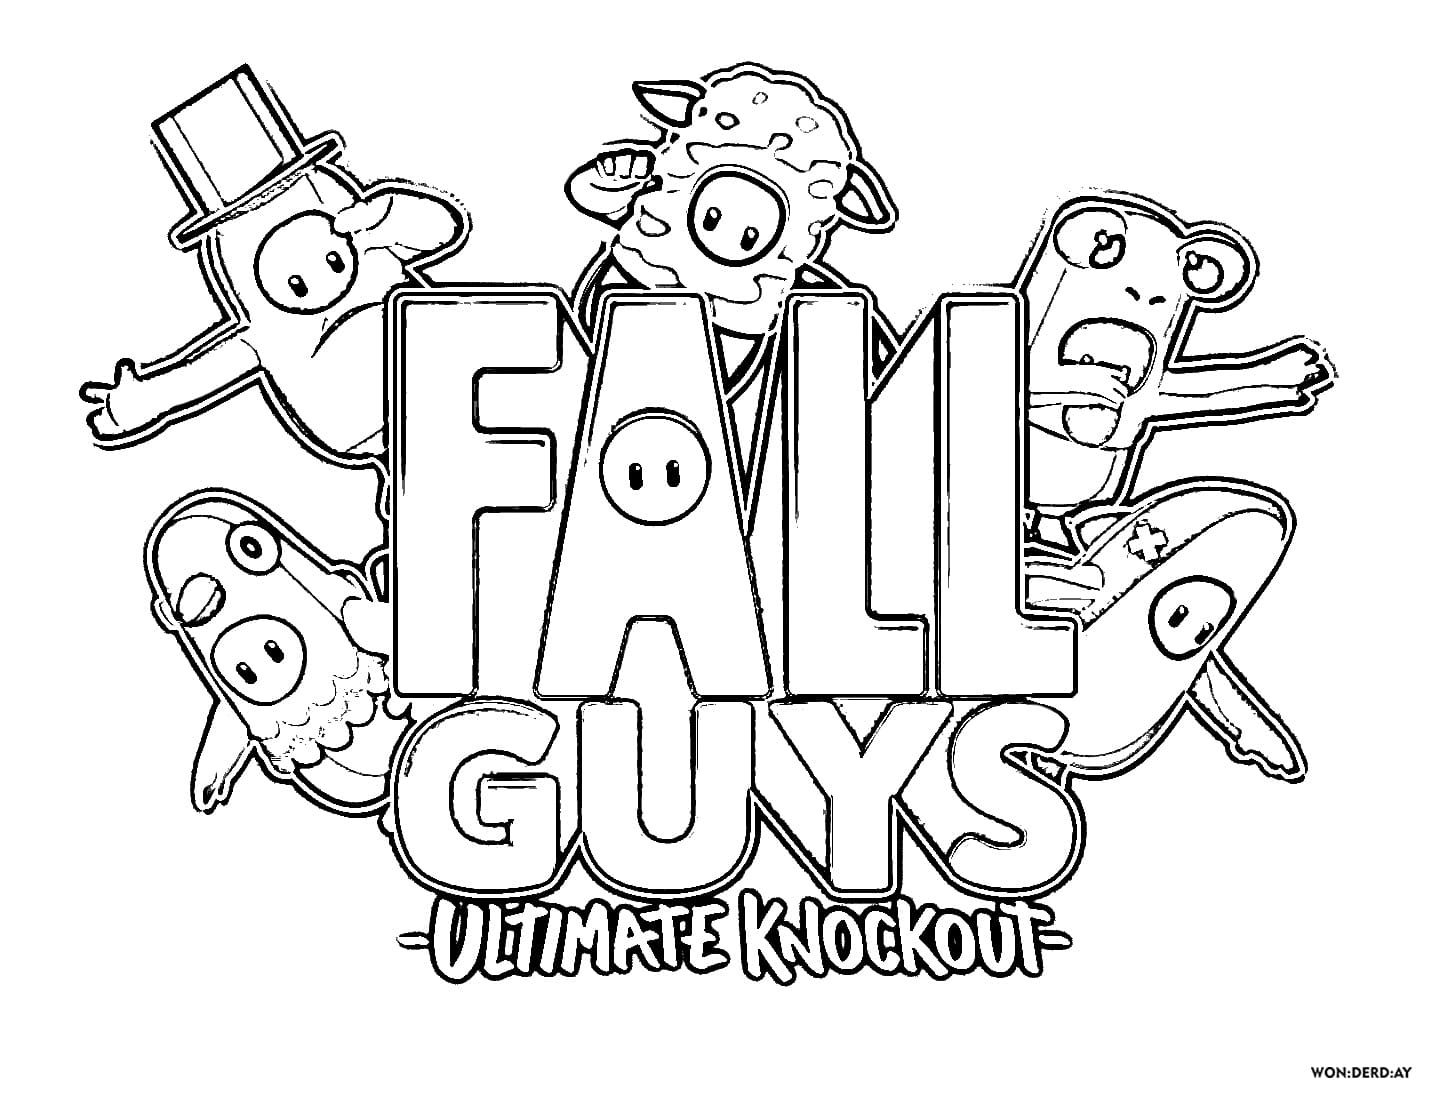 Fall Guys Coloring Pages Print For Free Wonder Day